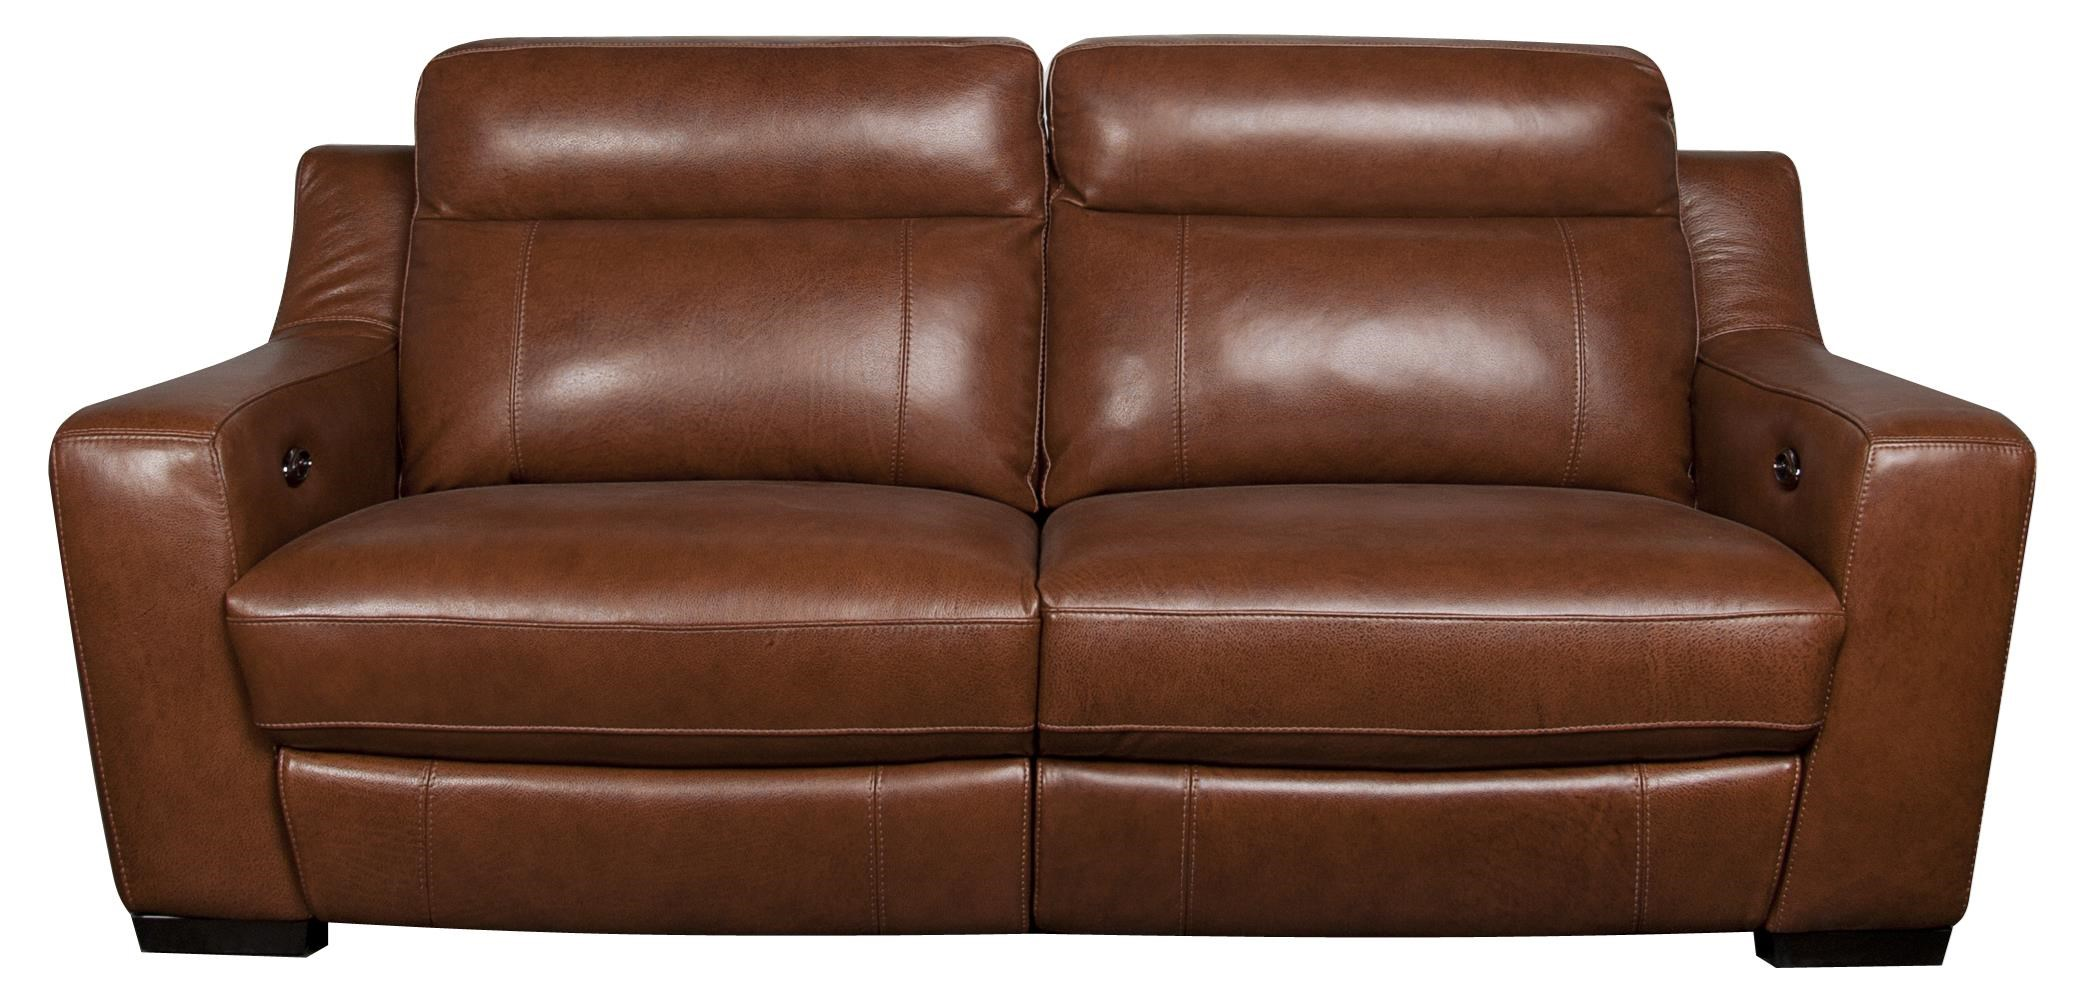 Morris Home Furnishings Andy Andy Leather-Match* Power Recline Sofa - Item Number: 269457146